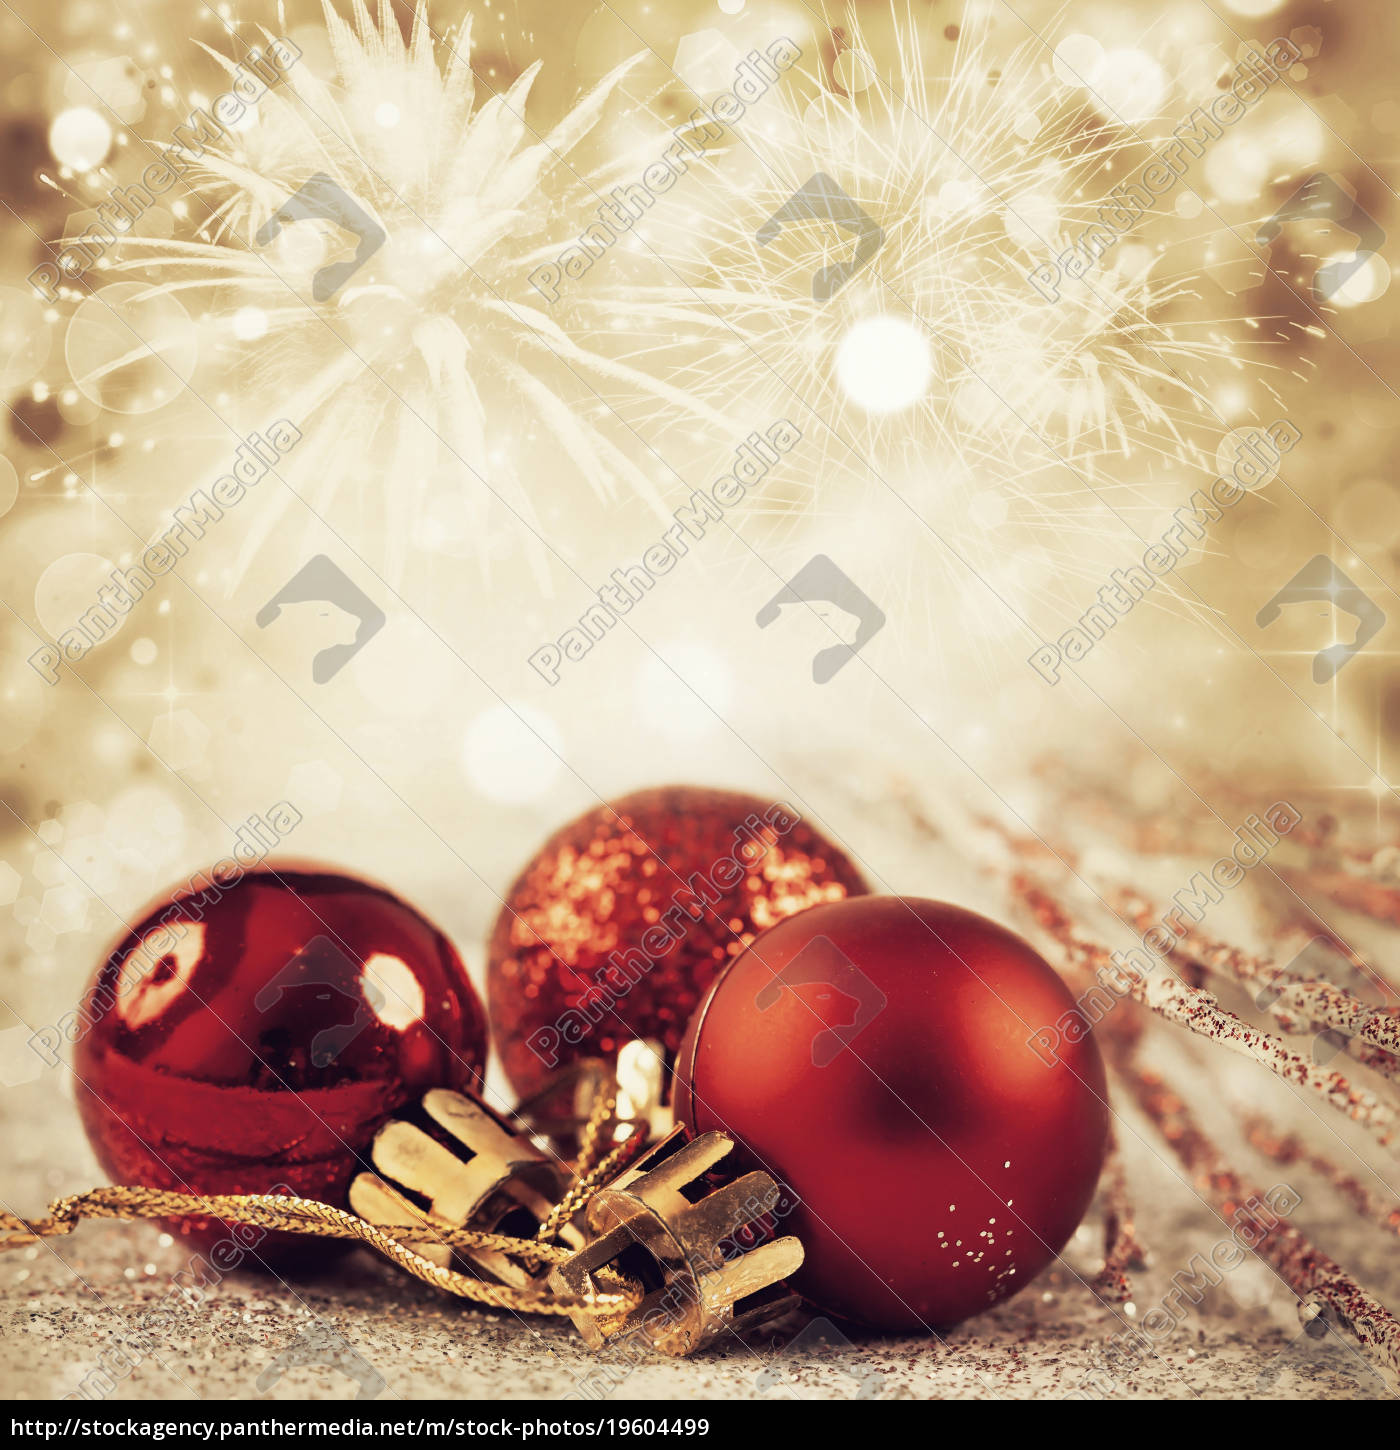 Christmas Ornament Background.Royalty Free Image 19604499 Abstract Background With Christmas Decorations